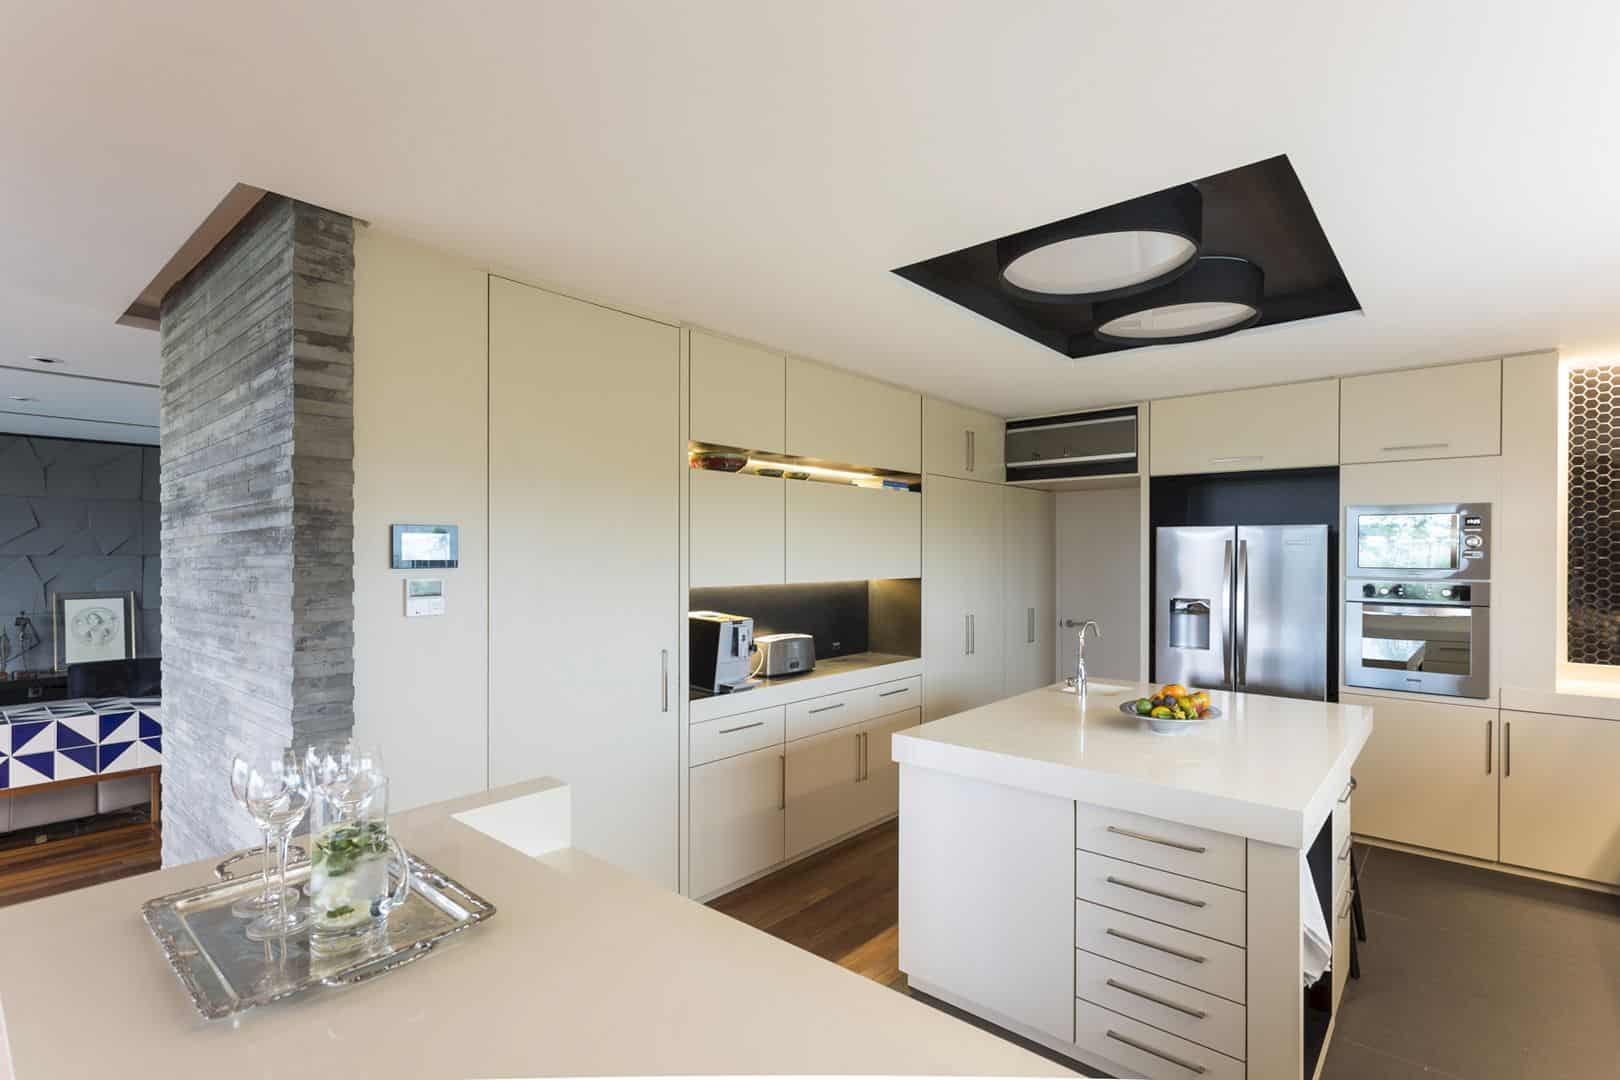 Casa R & L An Interior That Reflects Welcoming Personalities And Minimalist Aesthetics 13